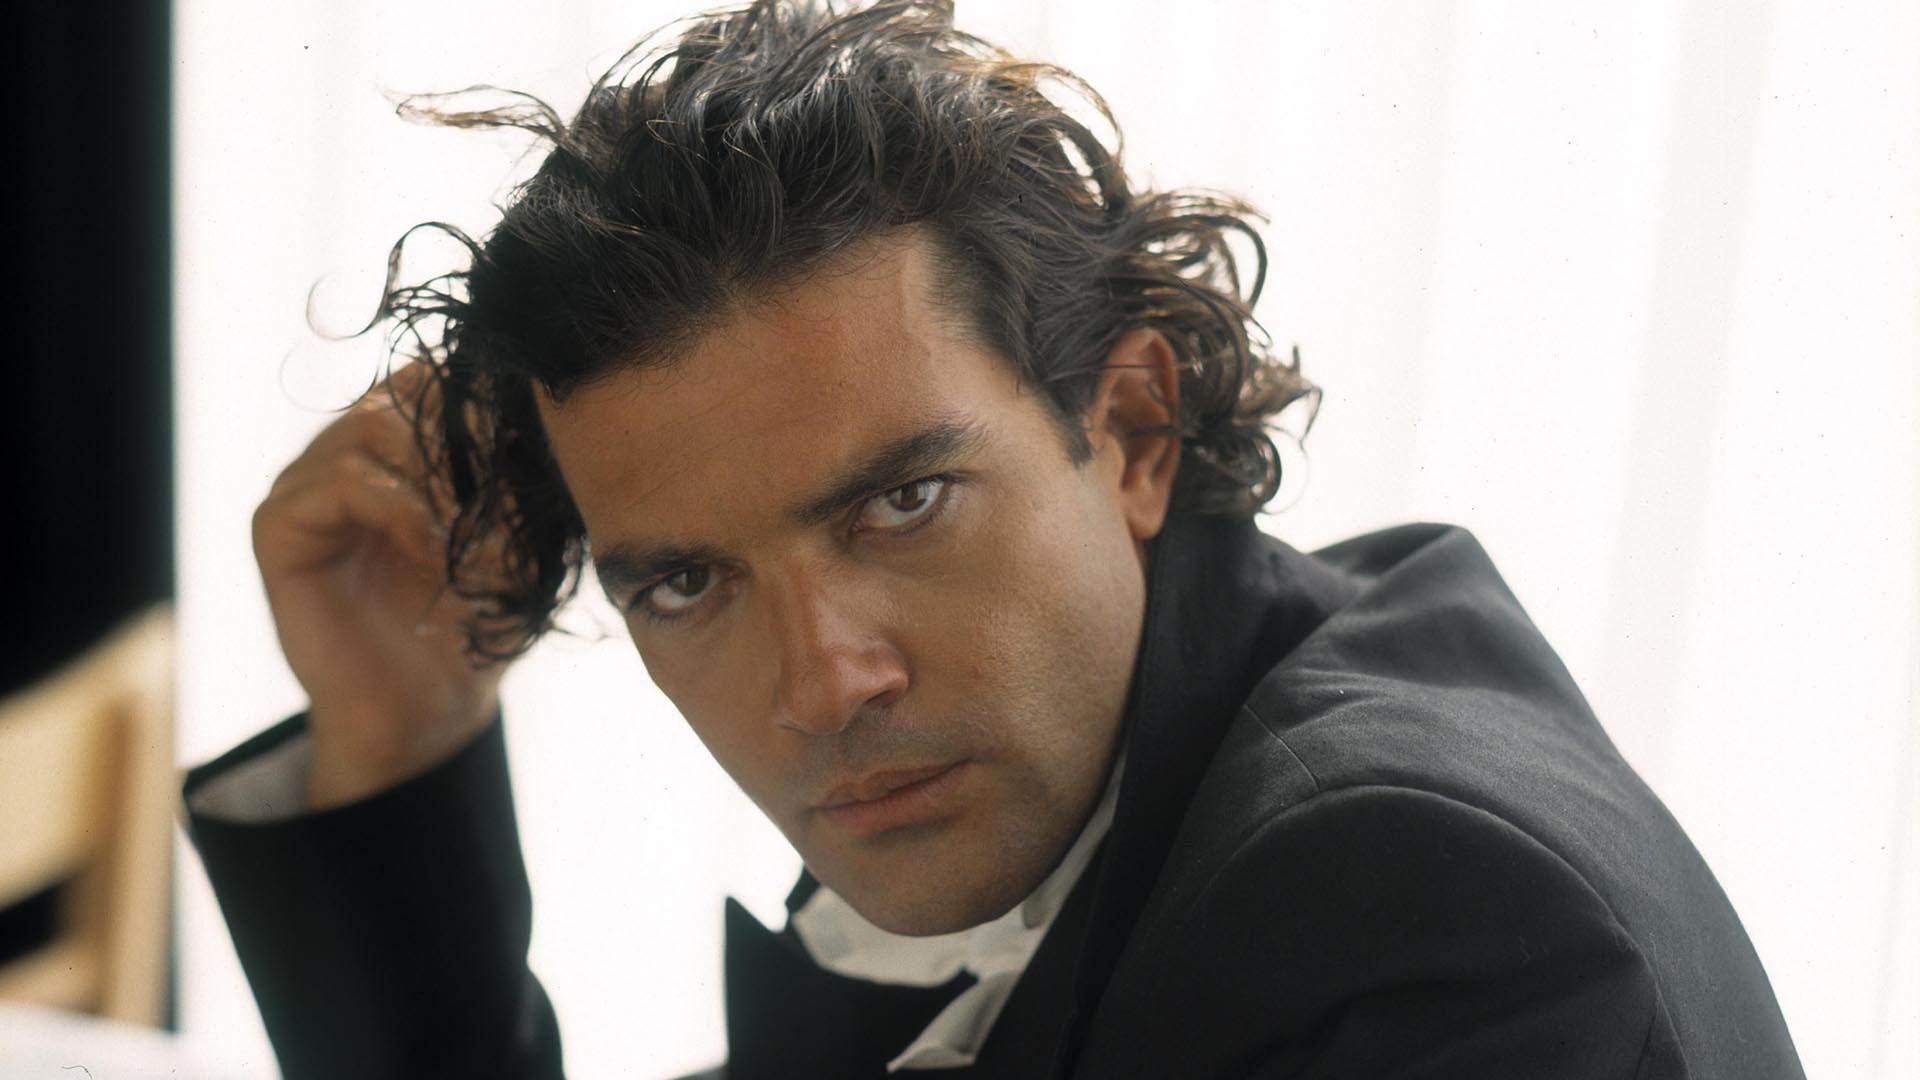 antonio banderas hd wallpaper 52110